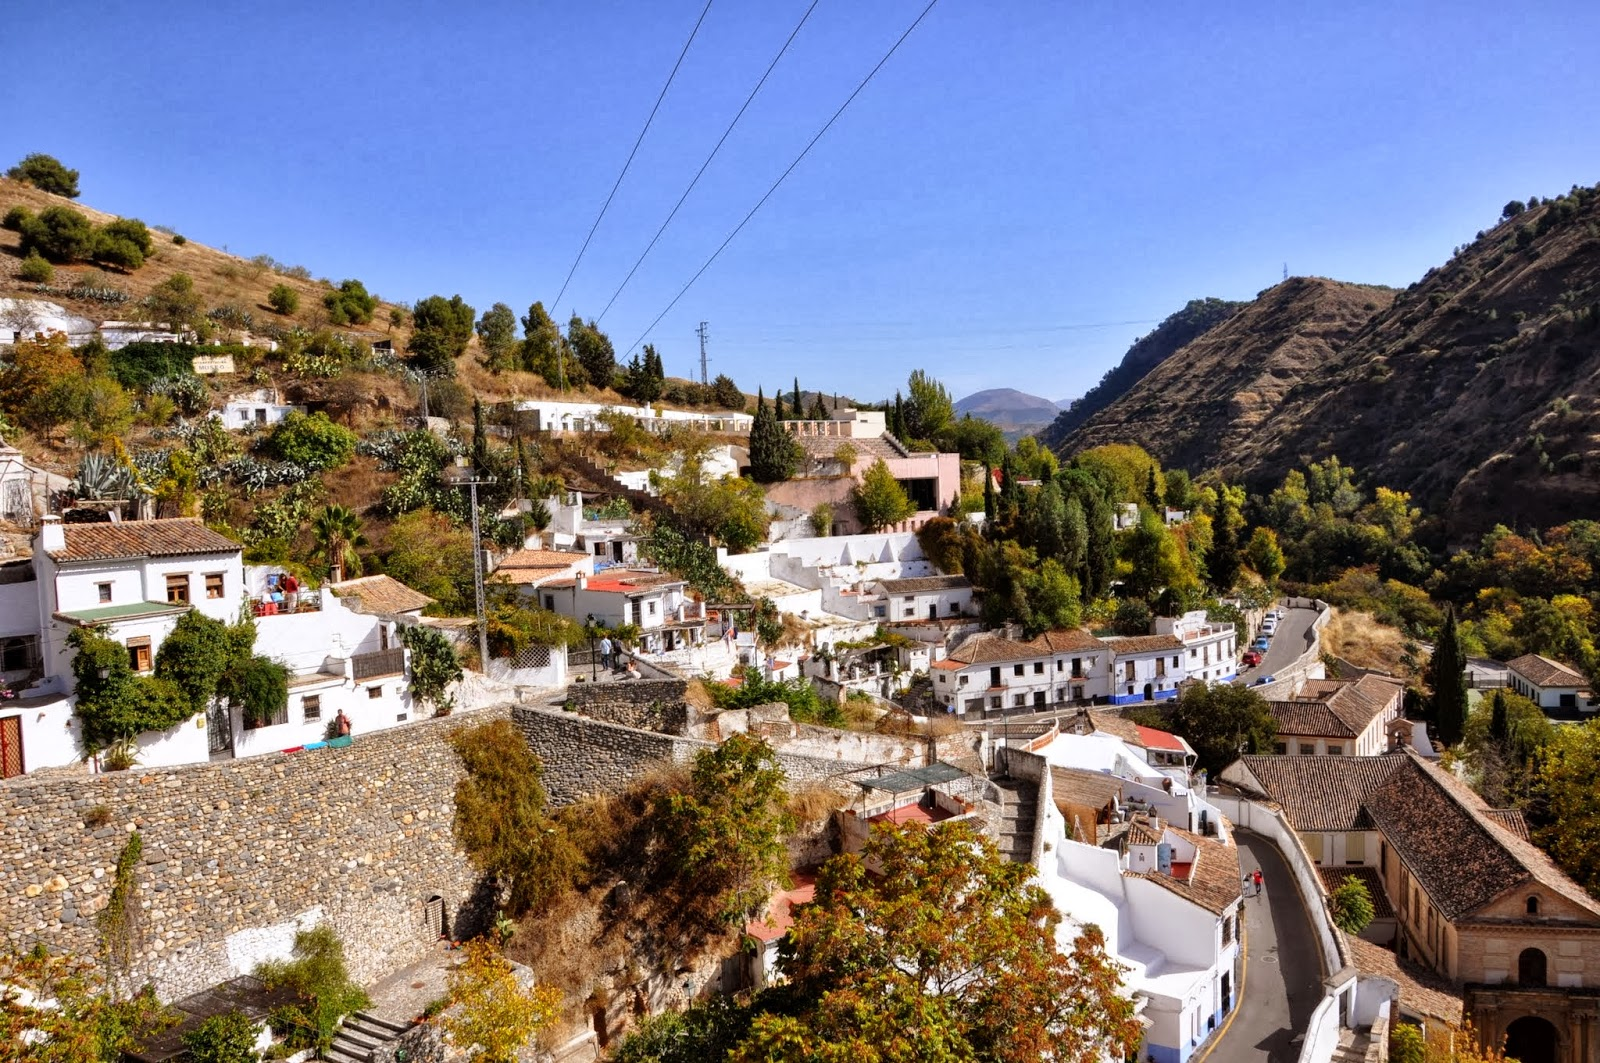 Itchy Feet Adventures: The Caves of Granada in Sacromonte